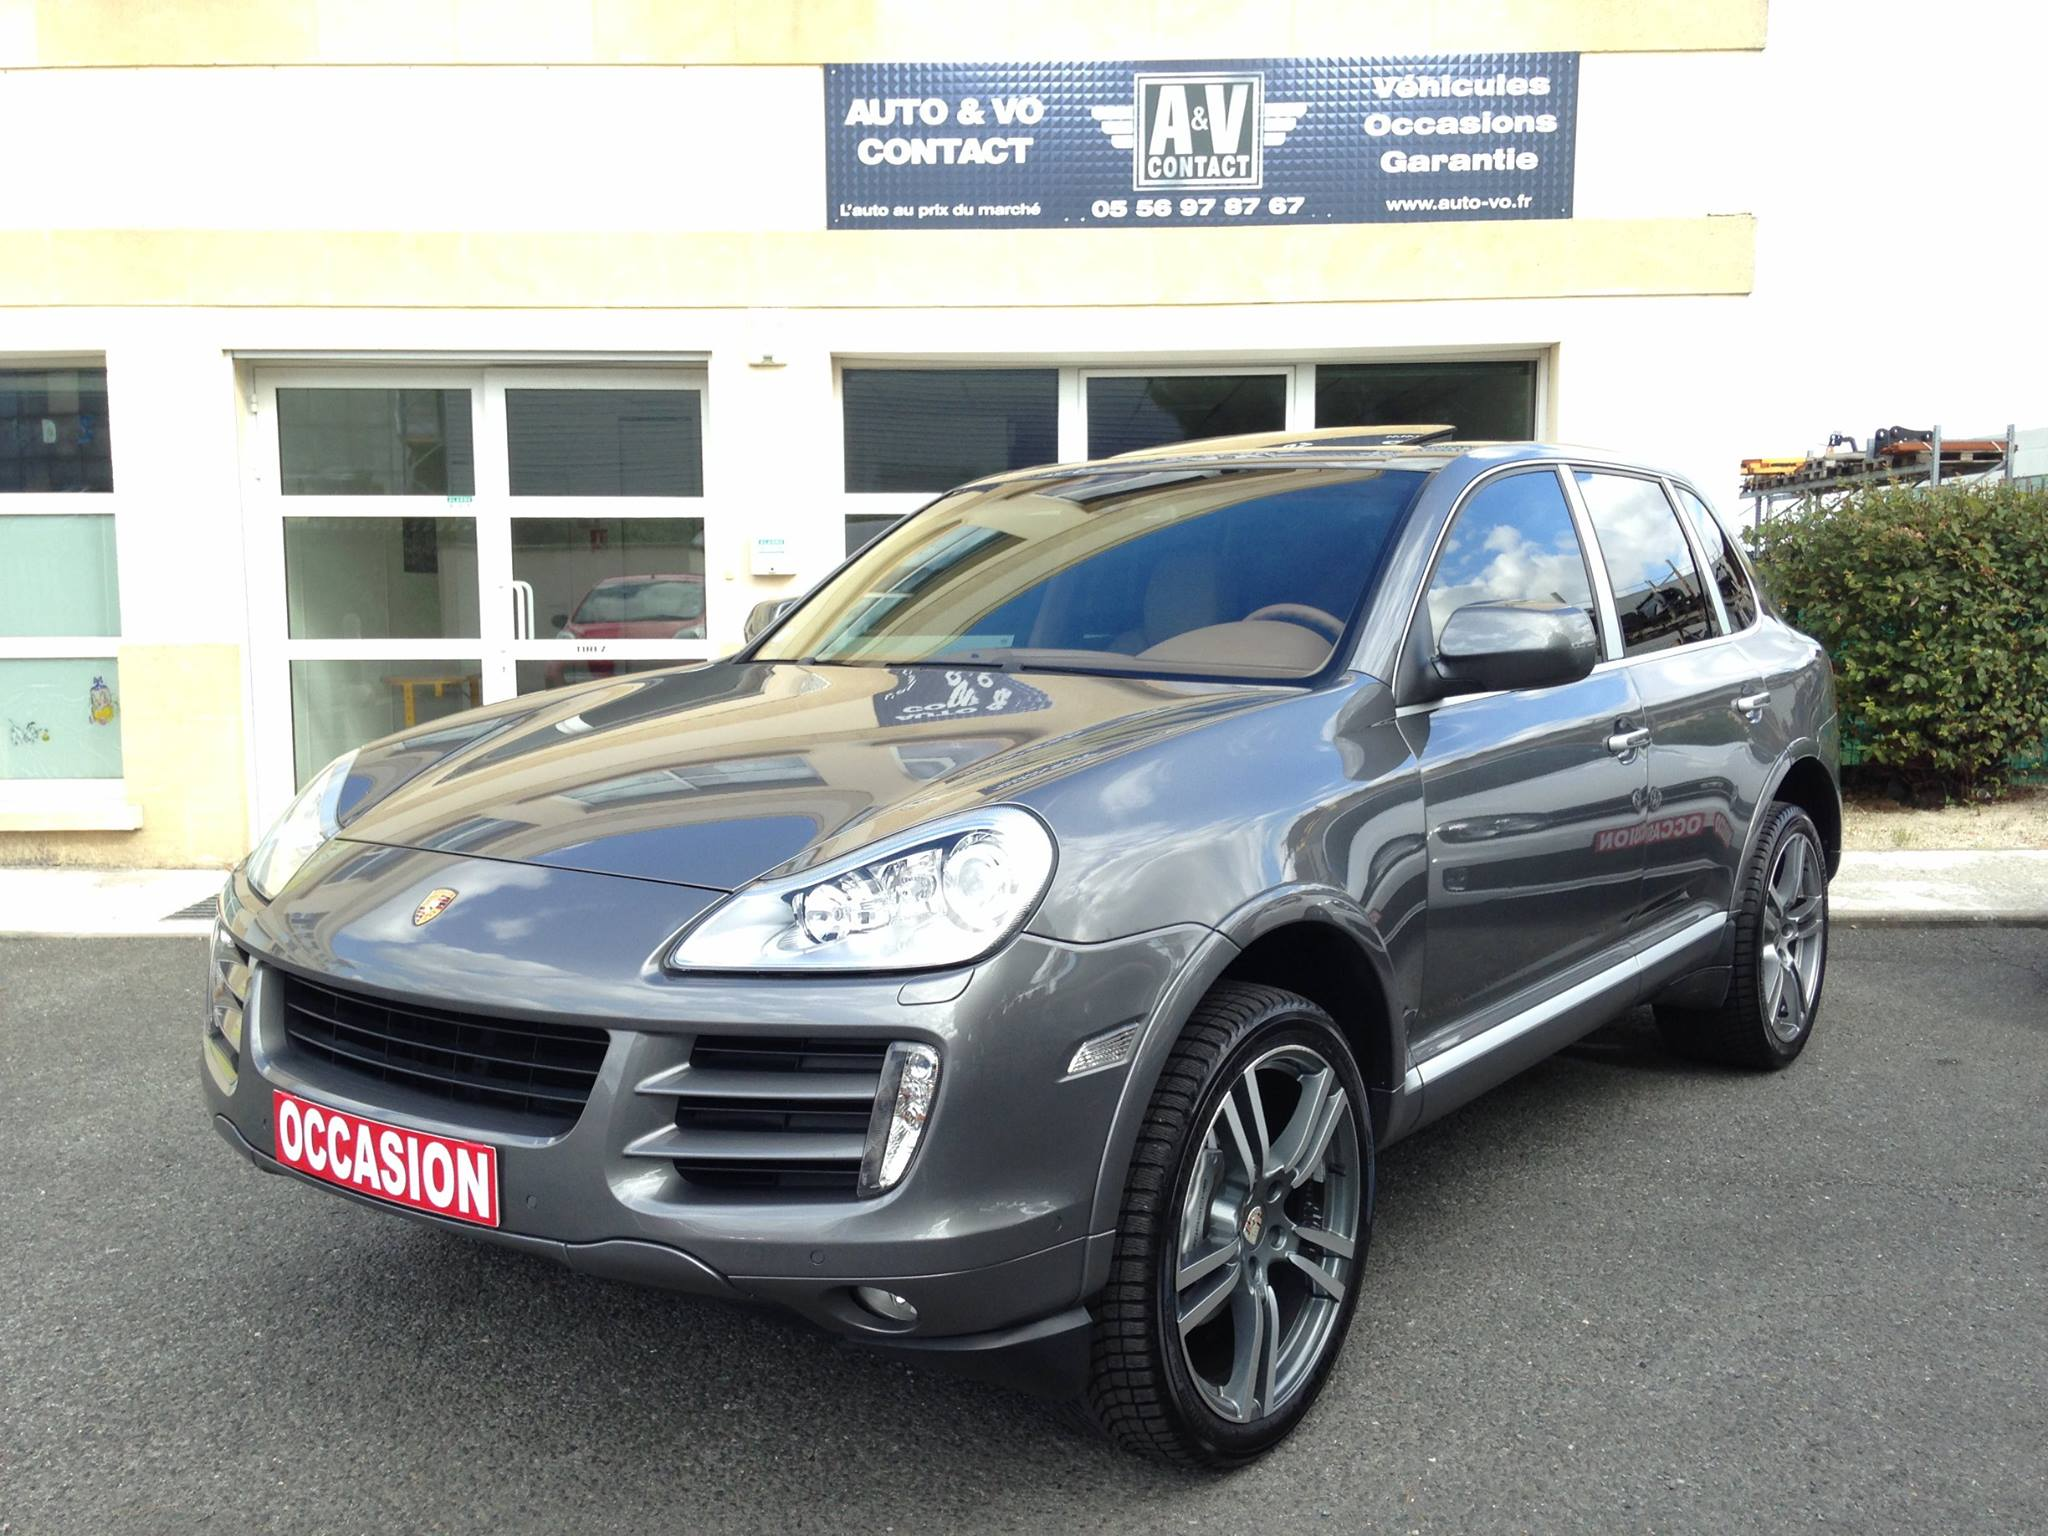 porsche cayenne s phase 2 4 8 v8 385 ch tiptronic du 112 900 kms vendu sarl. Black Bedroom Furniture Sets. Home Design Ideas